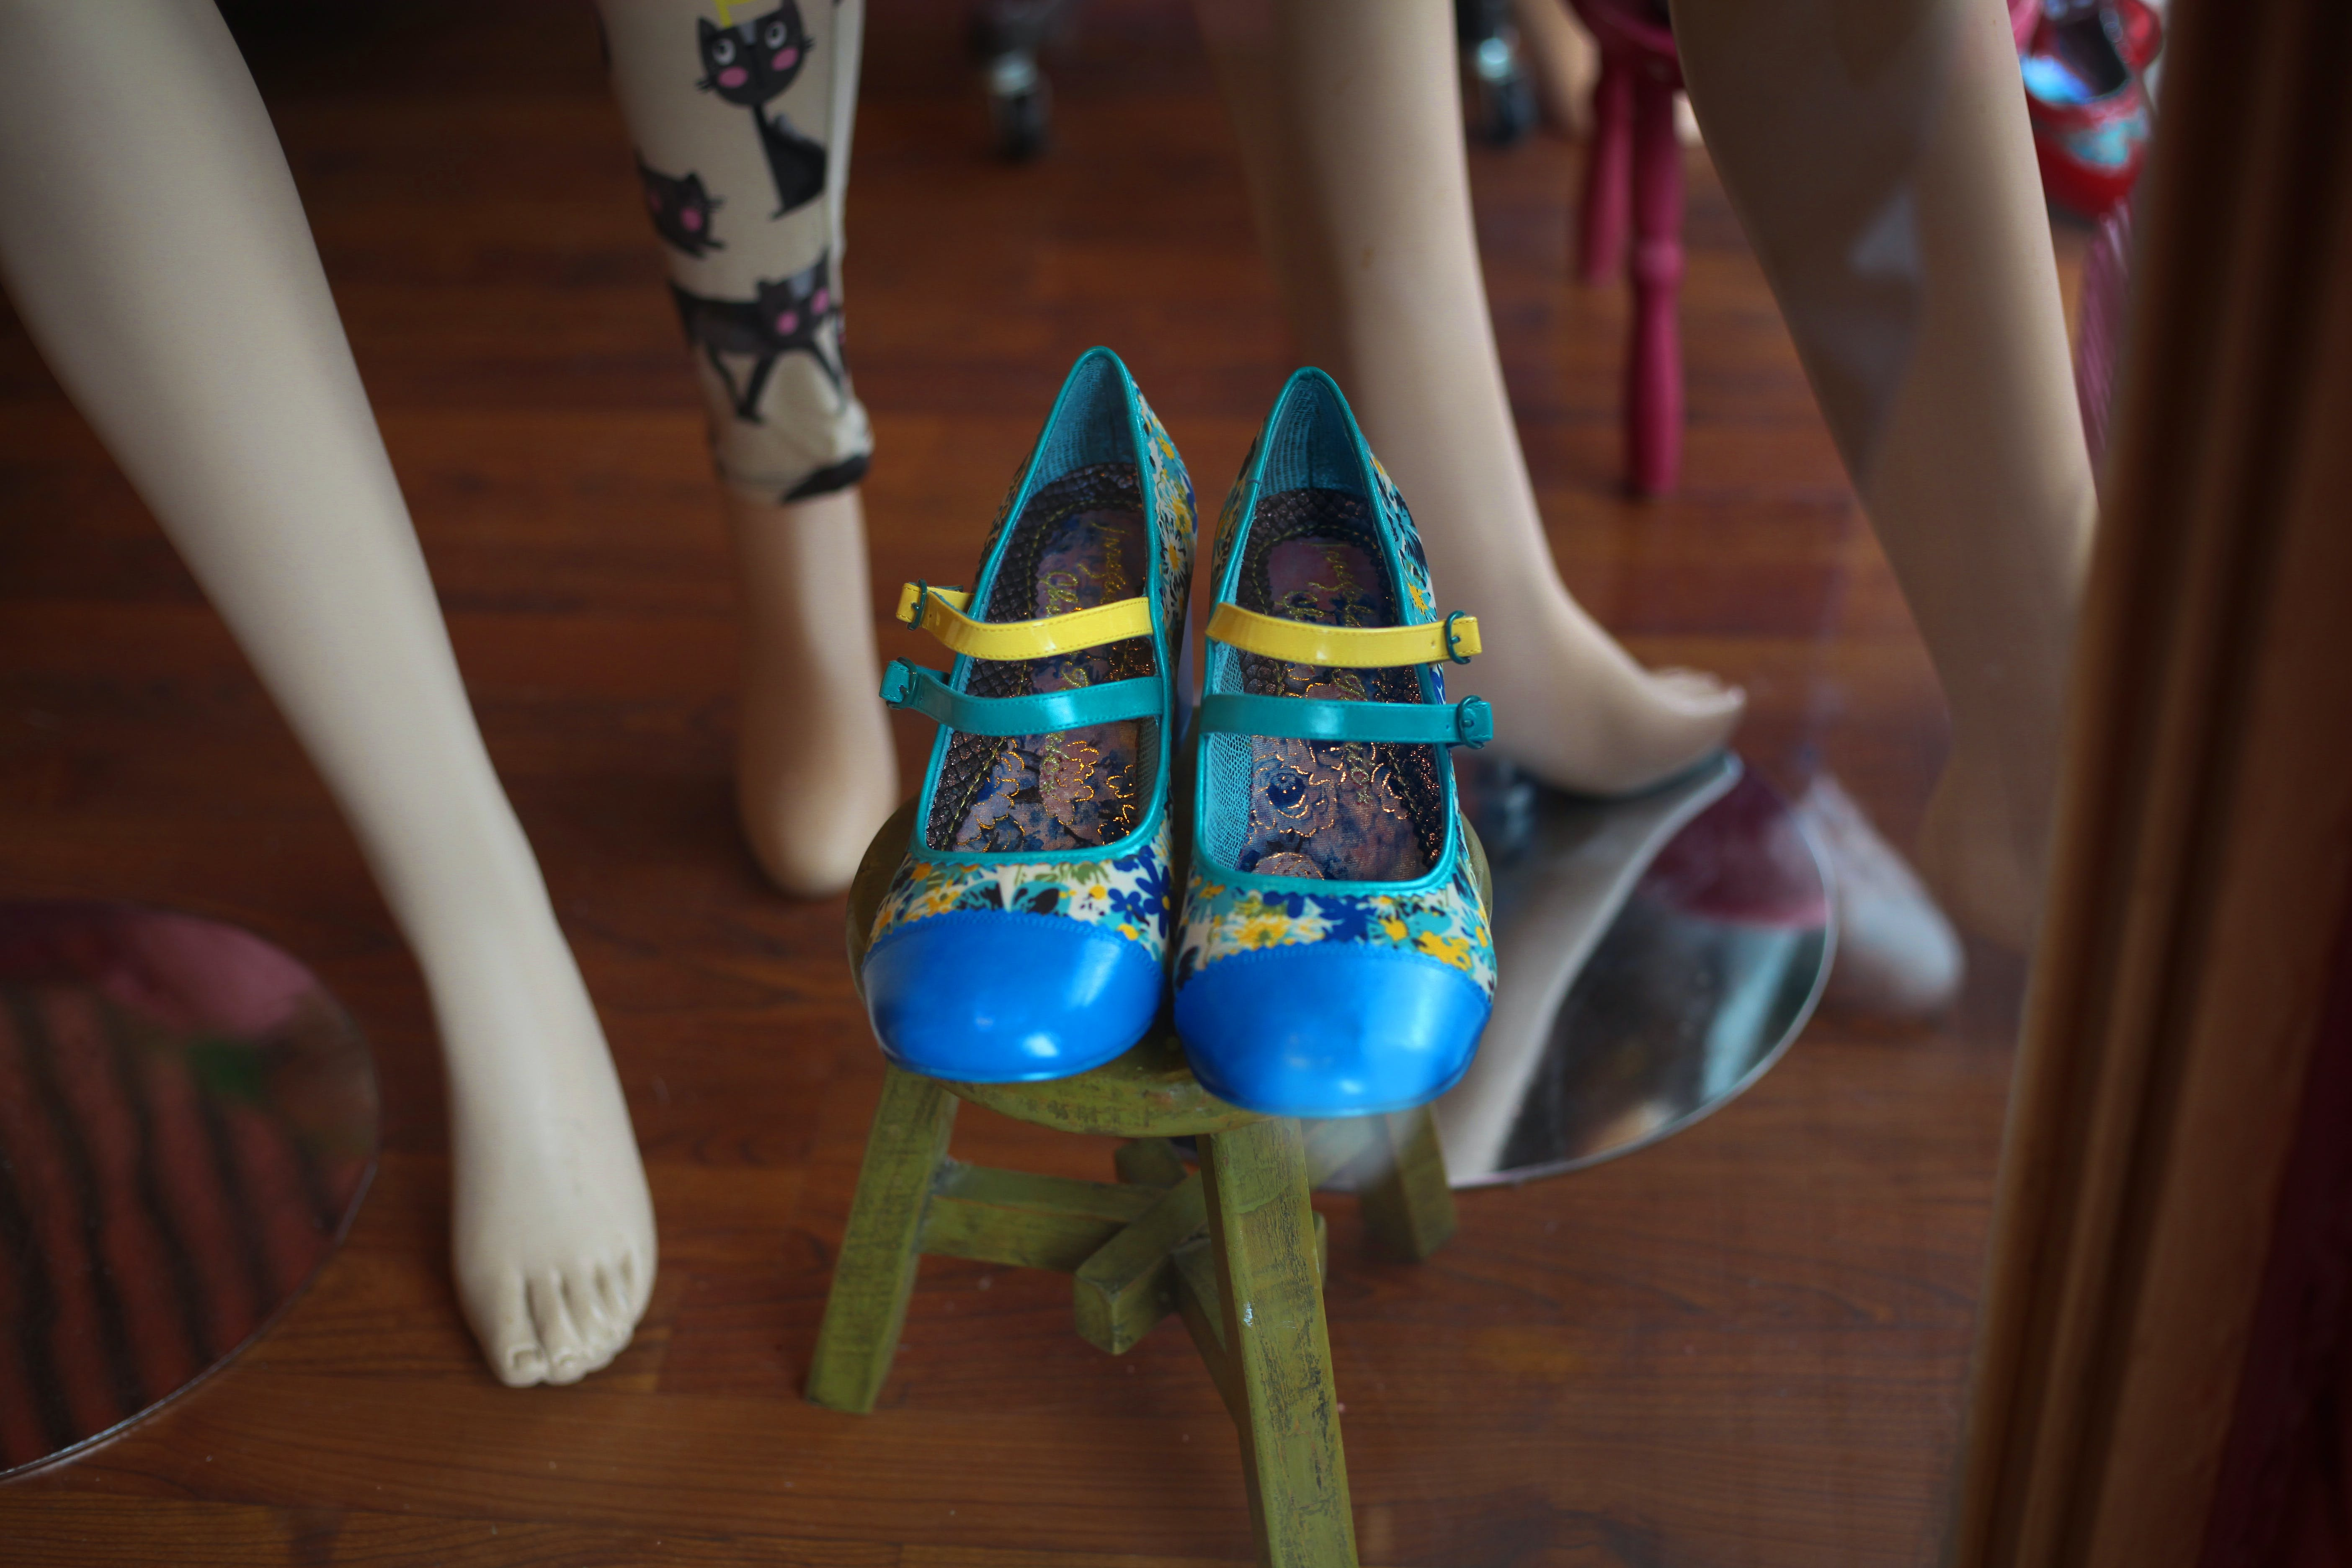 Free stock photo of shoes blue manequins